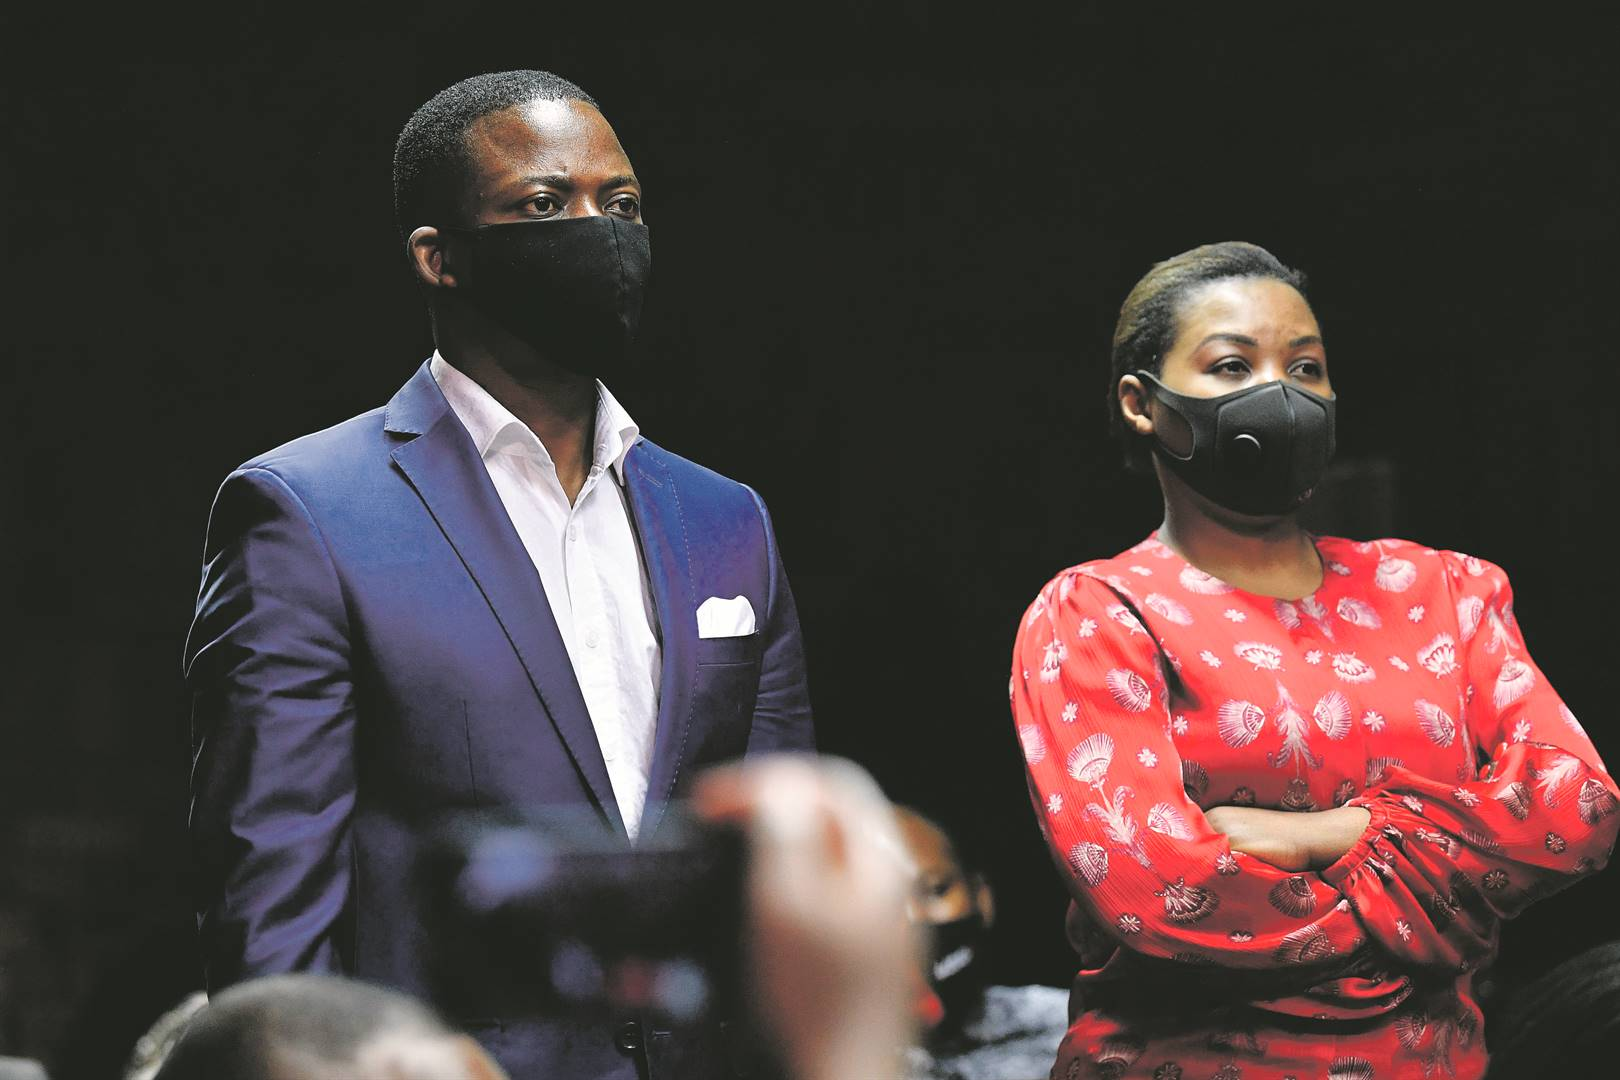 """""""I Know Bushiri. I Was Close To Him … He Pays Everyone,"""" Bushiri Rape Accuser 'Left In The Lurch' After Escape"""